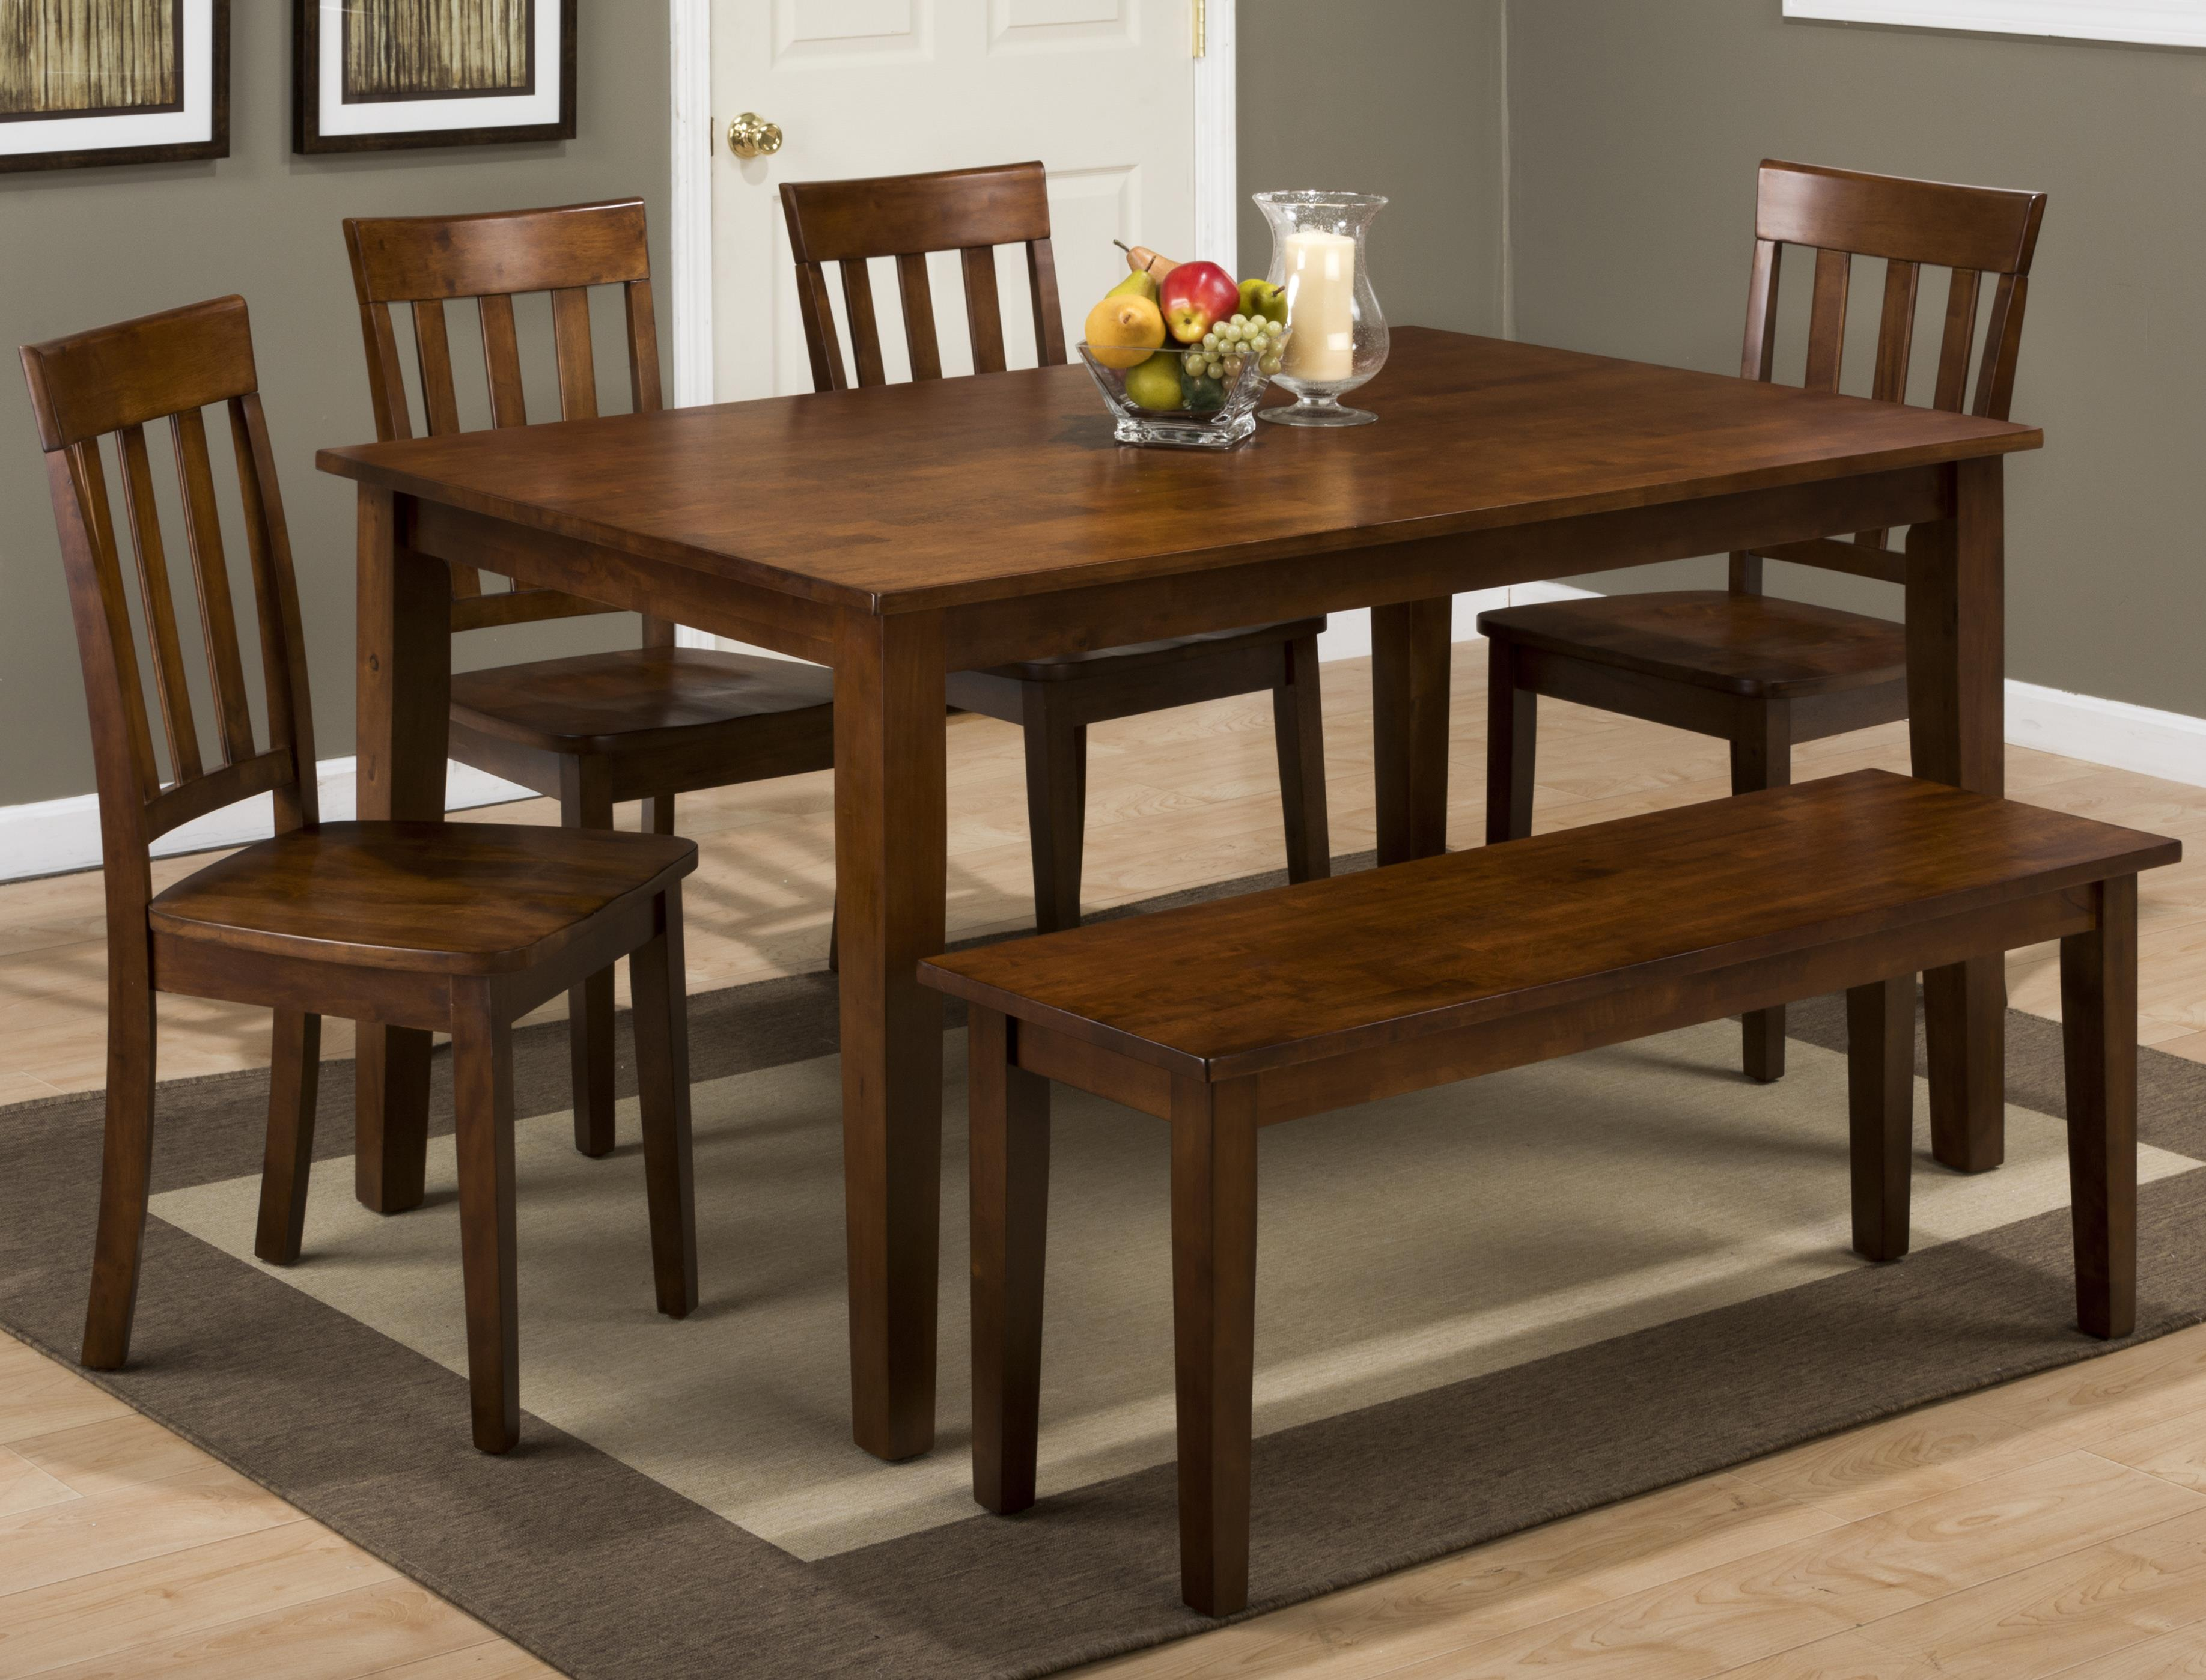 Rectangle Dining Table Set with Bench